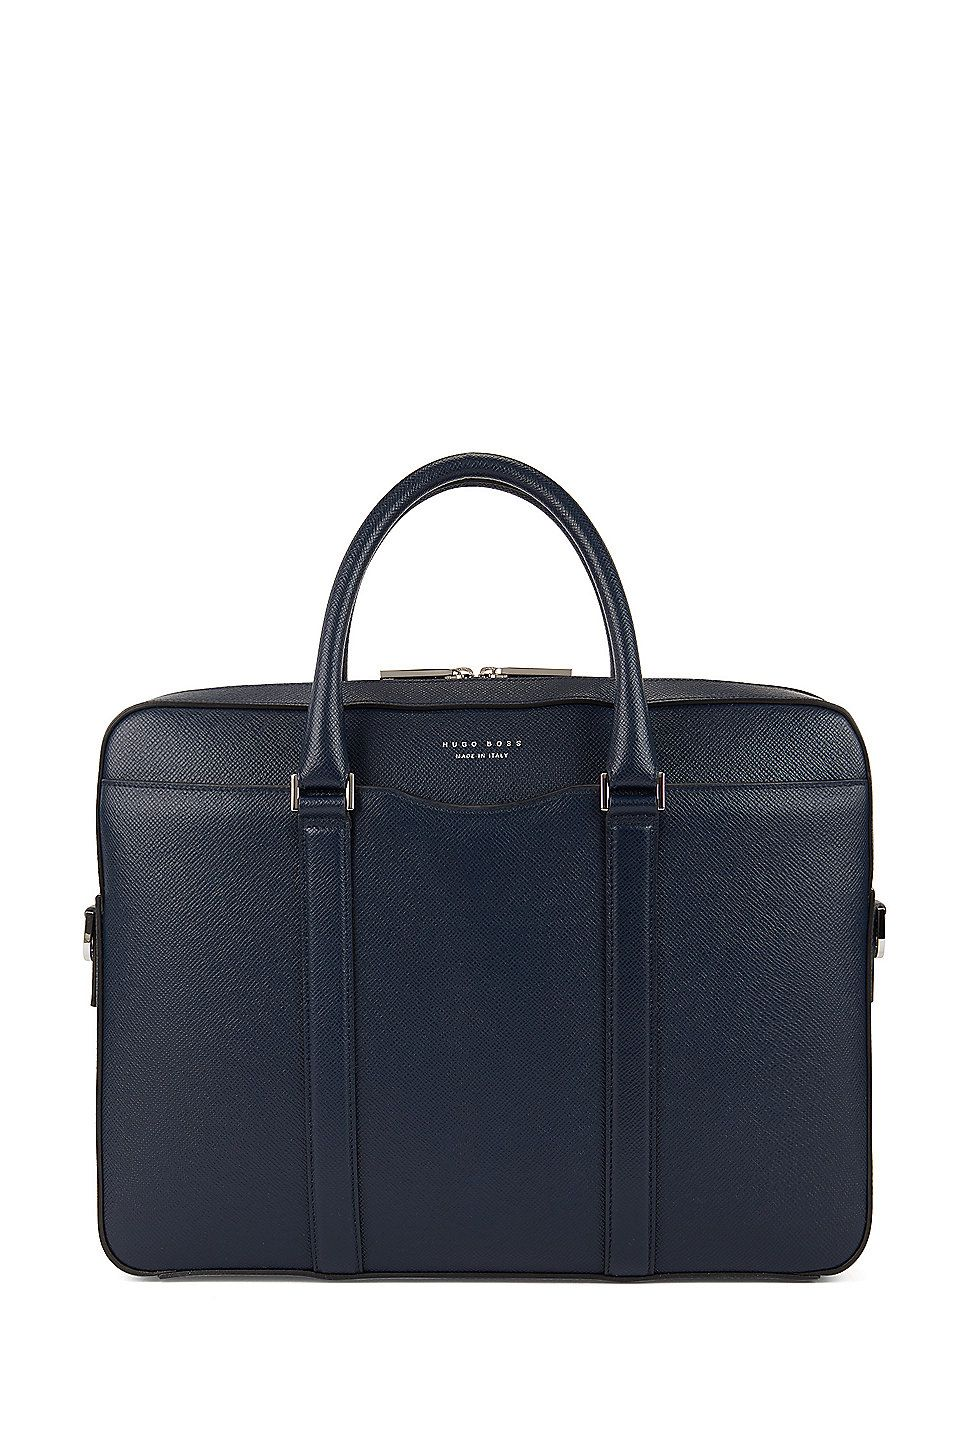 da48fc42fd HUGO BOSS Signature Collection document case in Italian calf leather - Dark  Blue Bags from BOSS